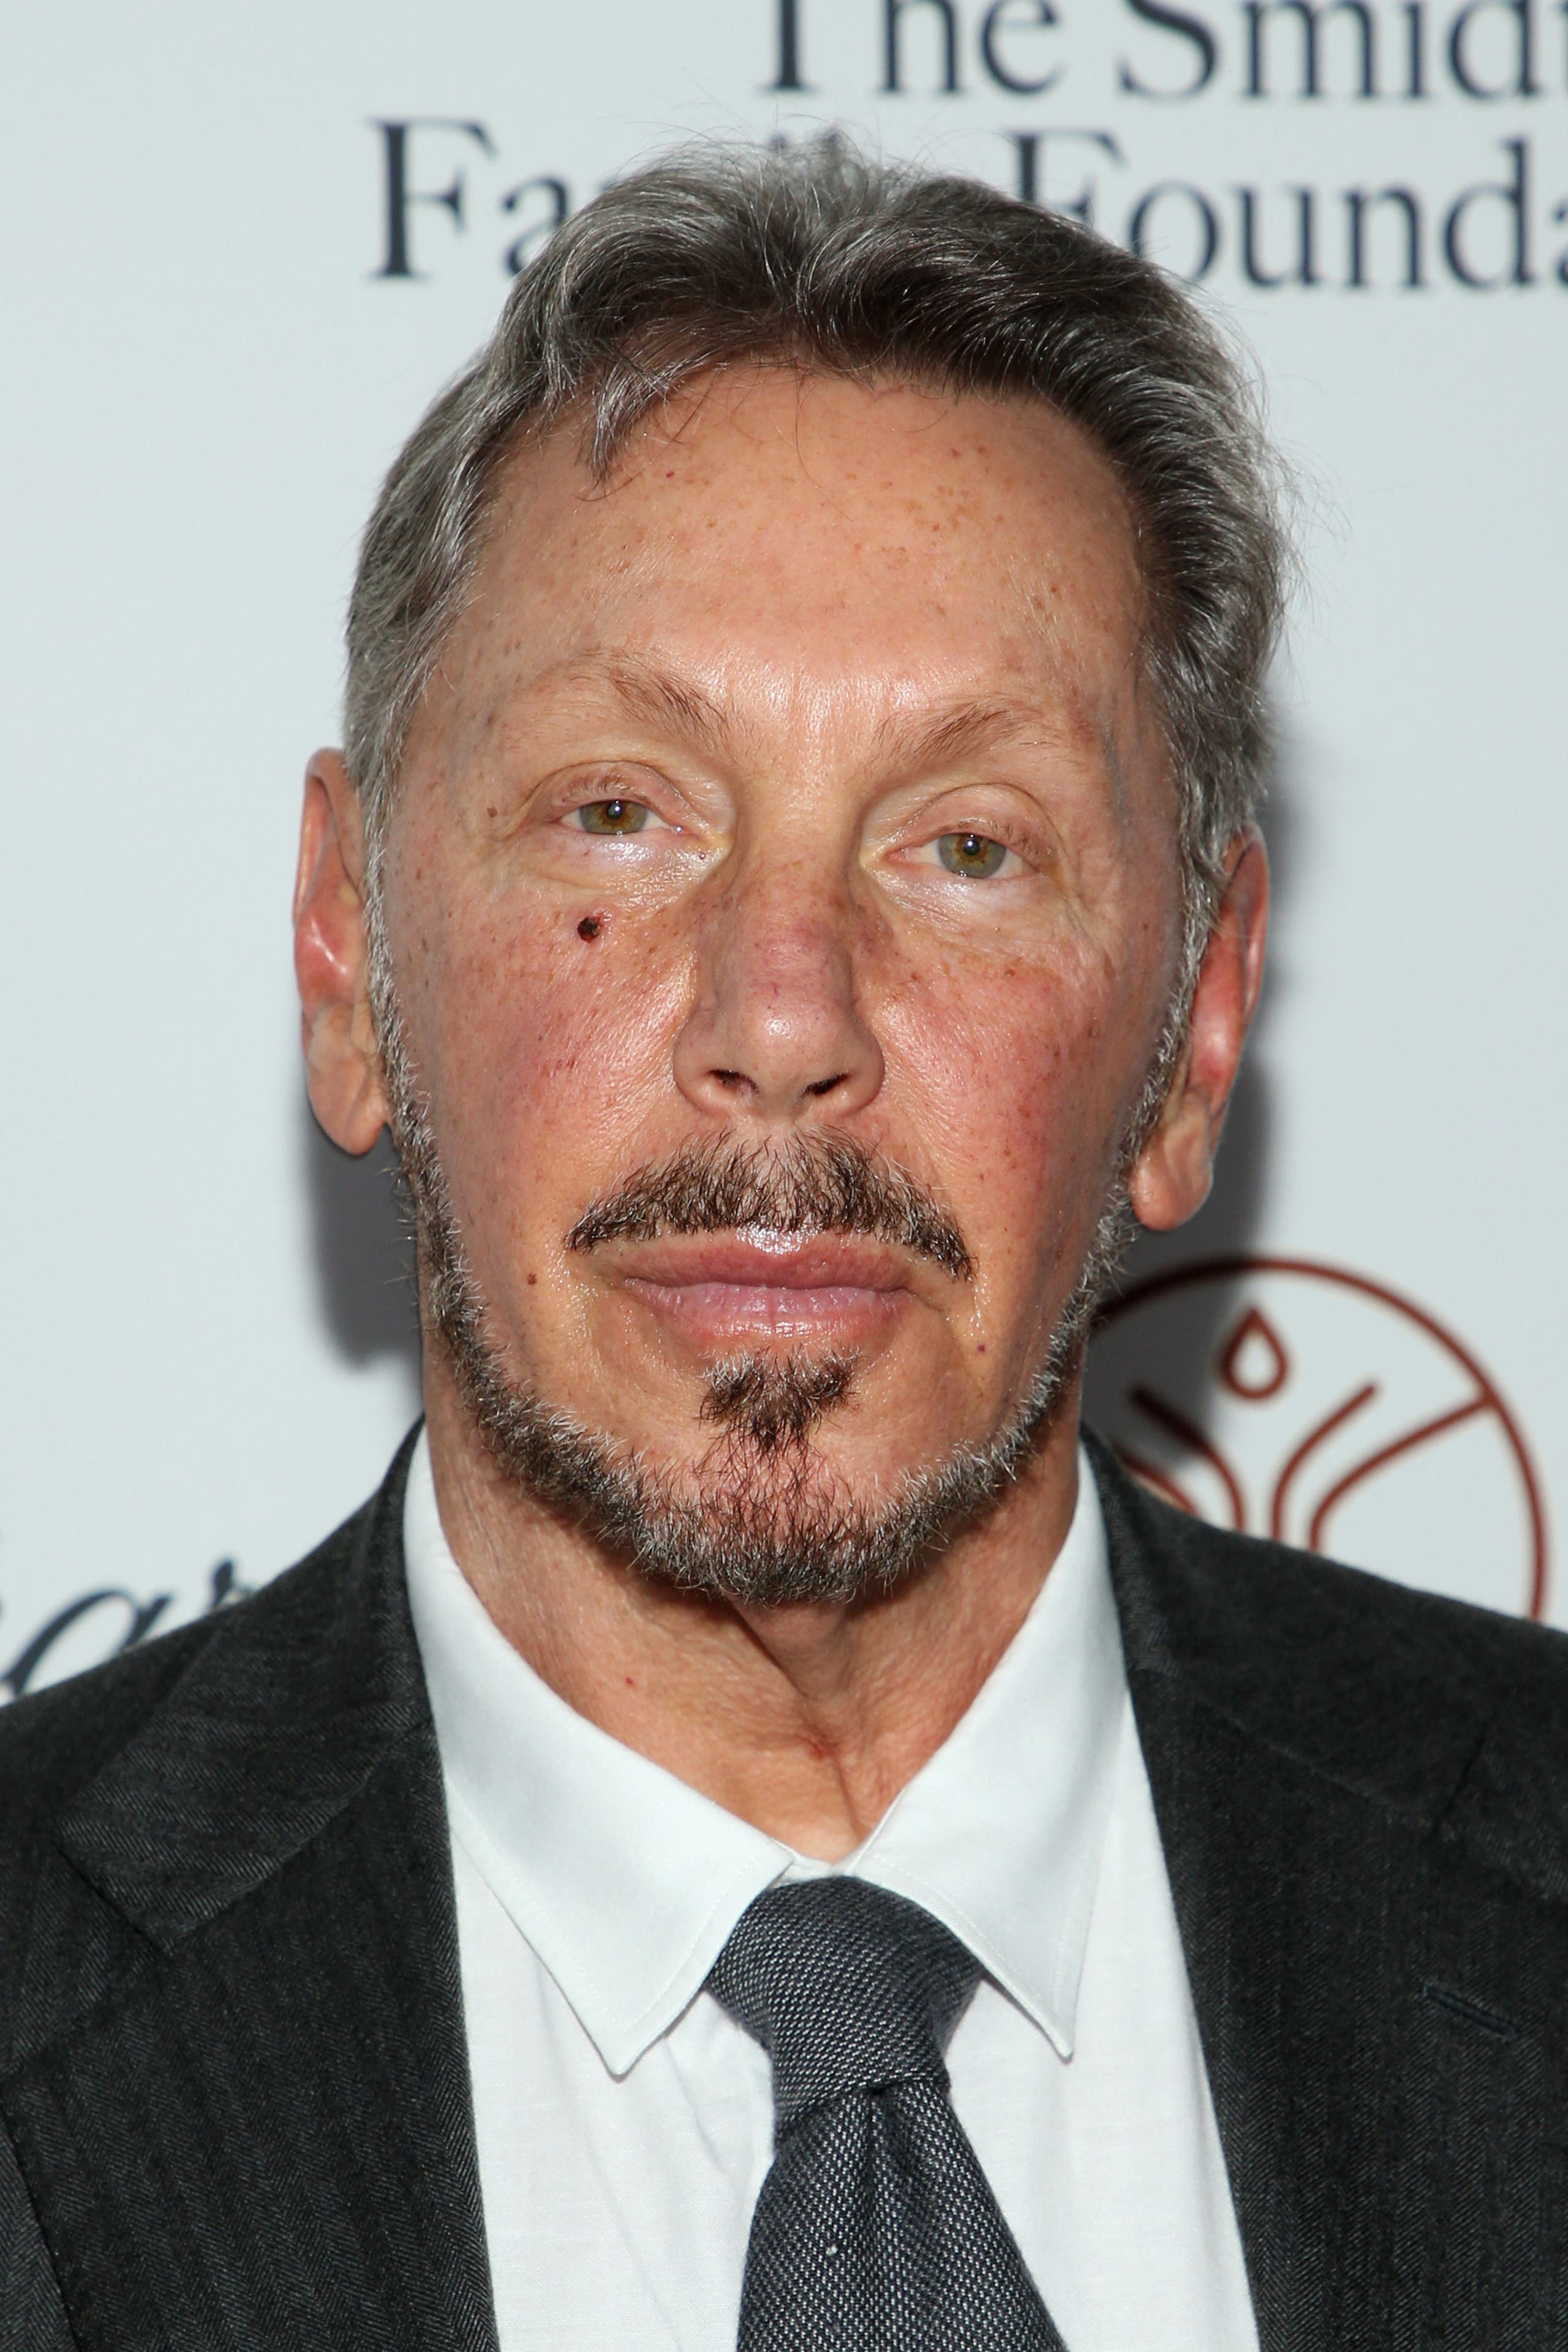 Larry Ellison attends the Rebels With A Cause Gala 2019 at Lawrence J Ellison Institute for Transformative Medicine of USC on October 24, 2019 in Los Angeles, California. (File photo: AFP)